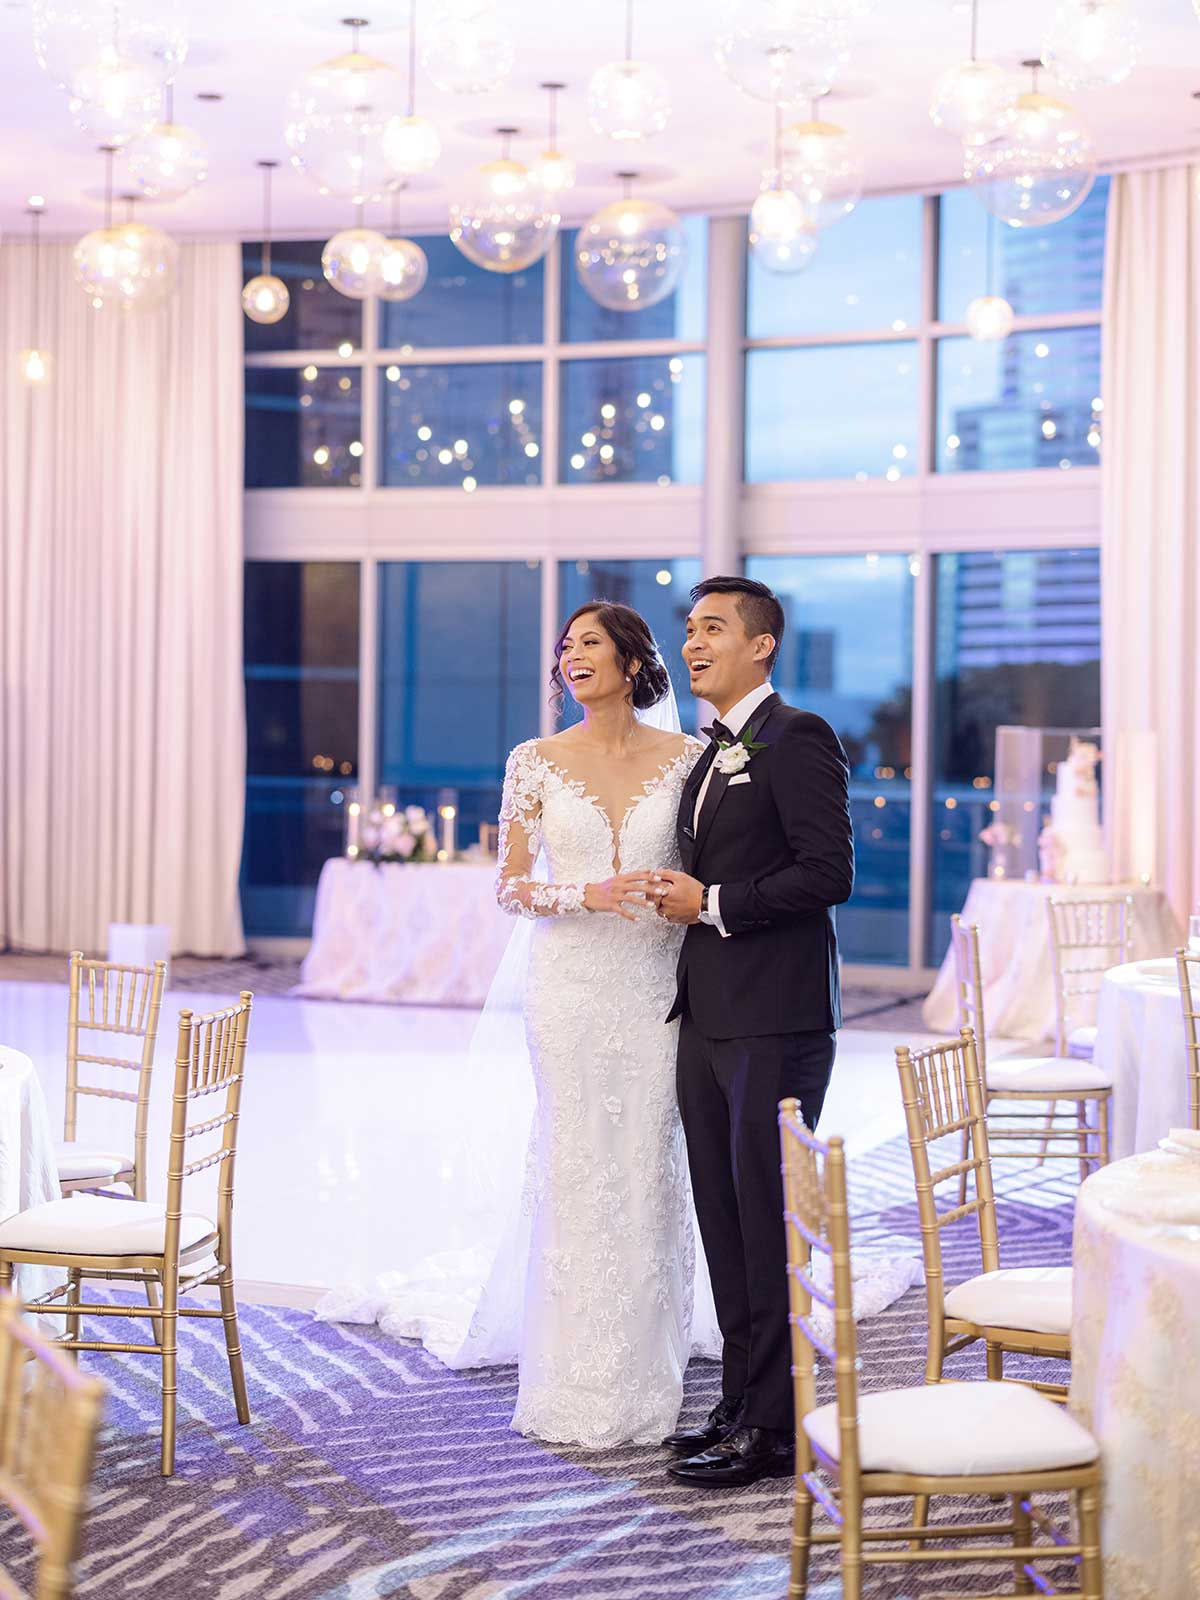 Couple's reception first look at The Epic hotel in Miami